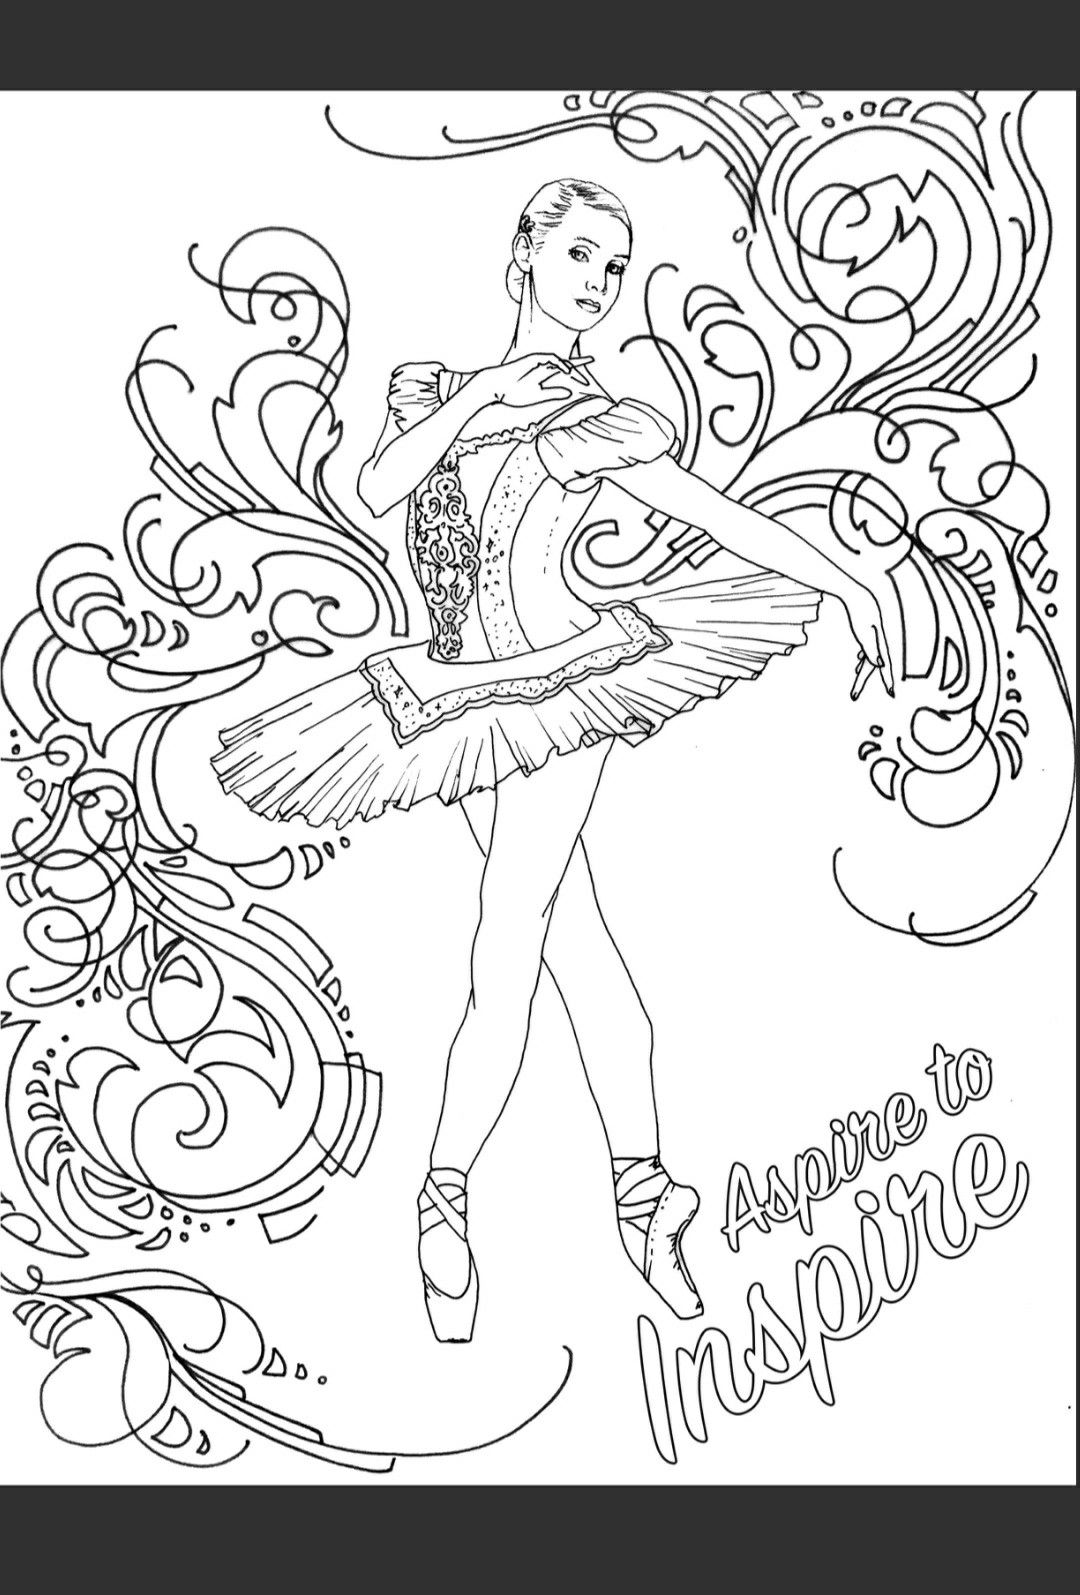 Pin By Kerri Vaile On Dance Coloring Pages Dance Coloring Pages Dance Crafts Colouring Pages